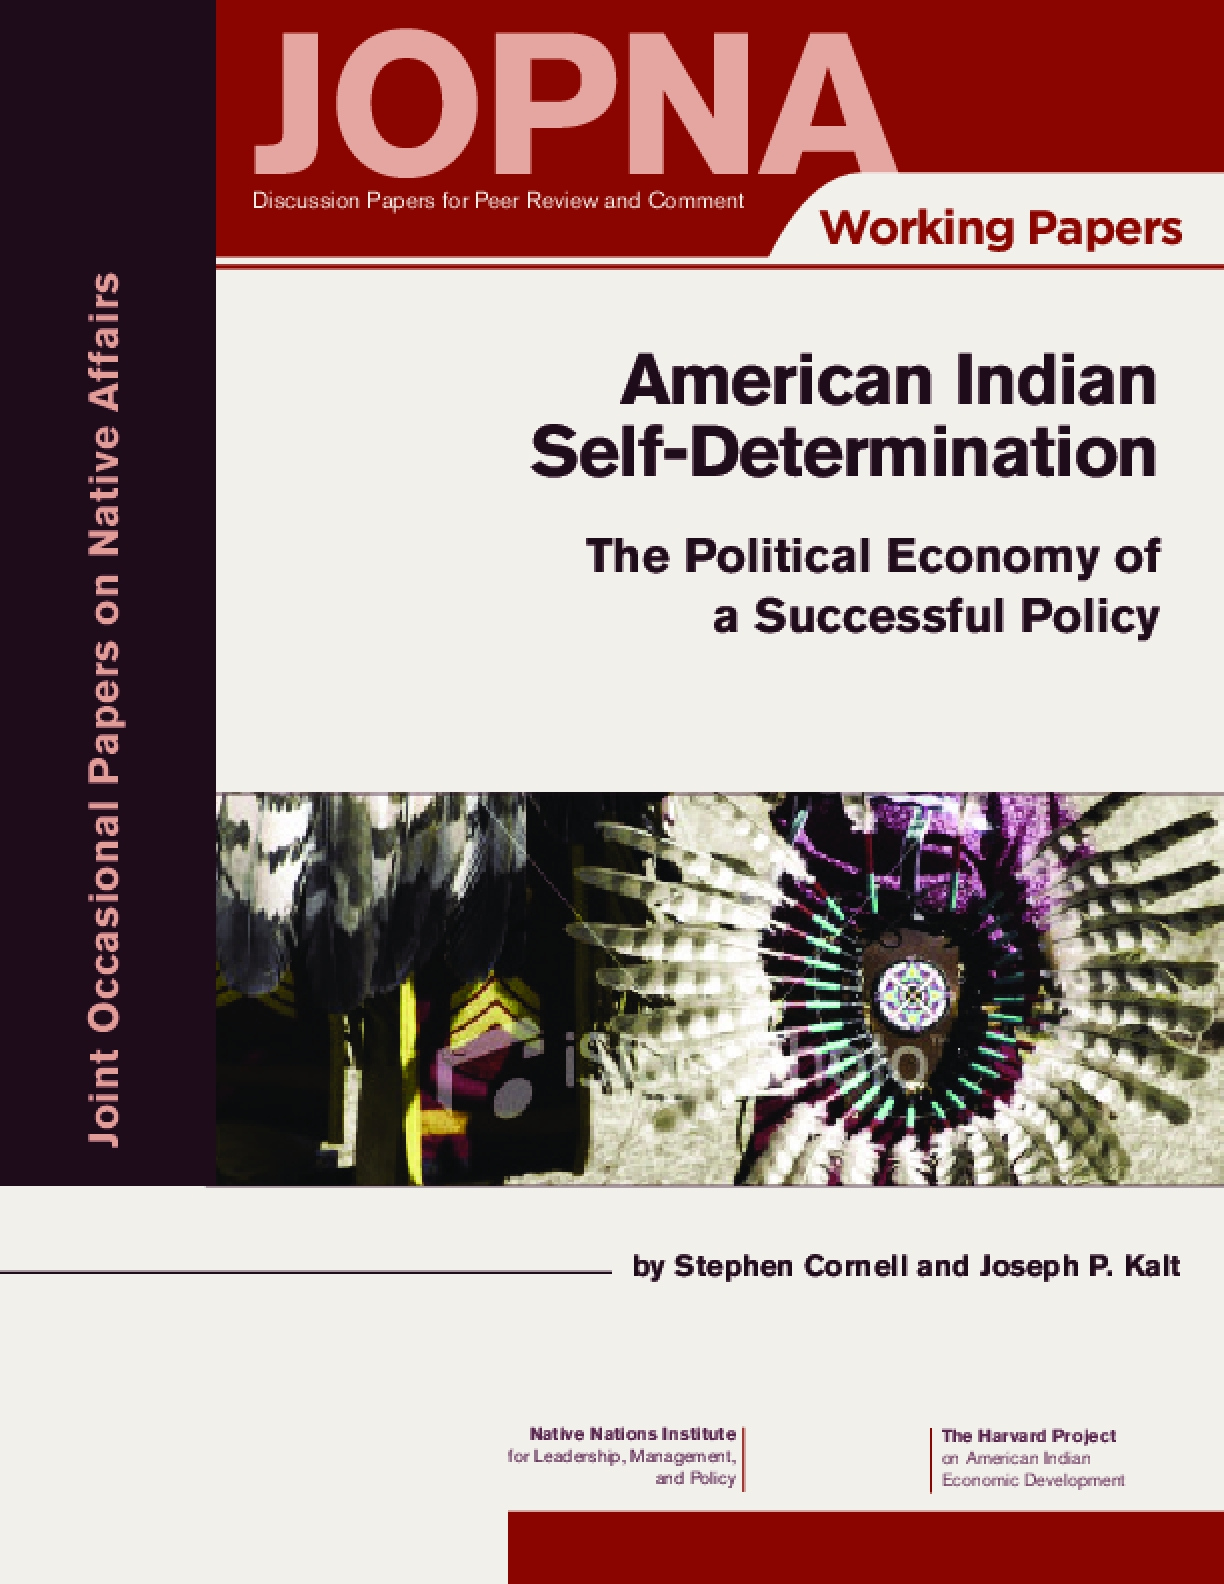 American Indian Self-Determination: The Political Economy of a Successful Policy